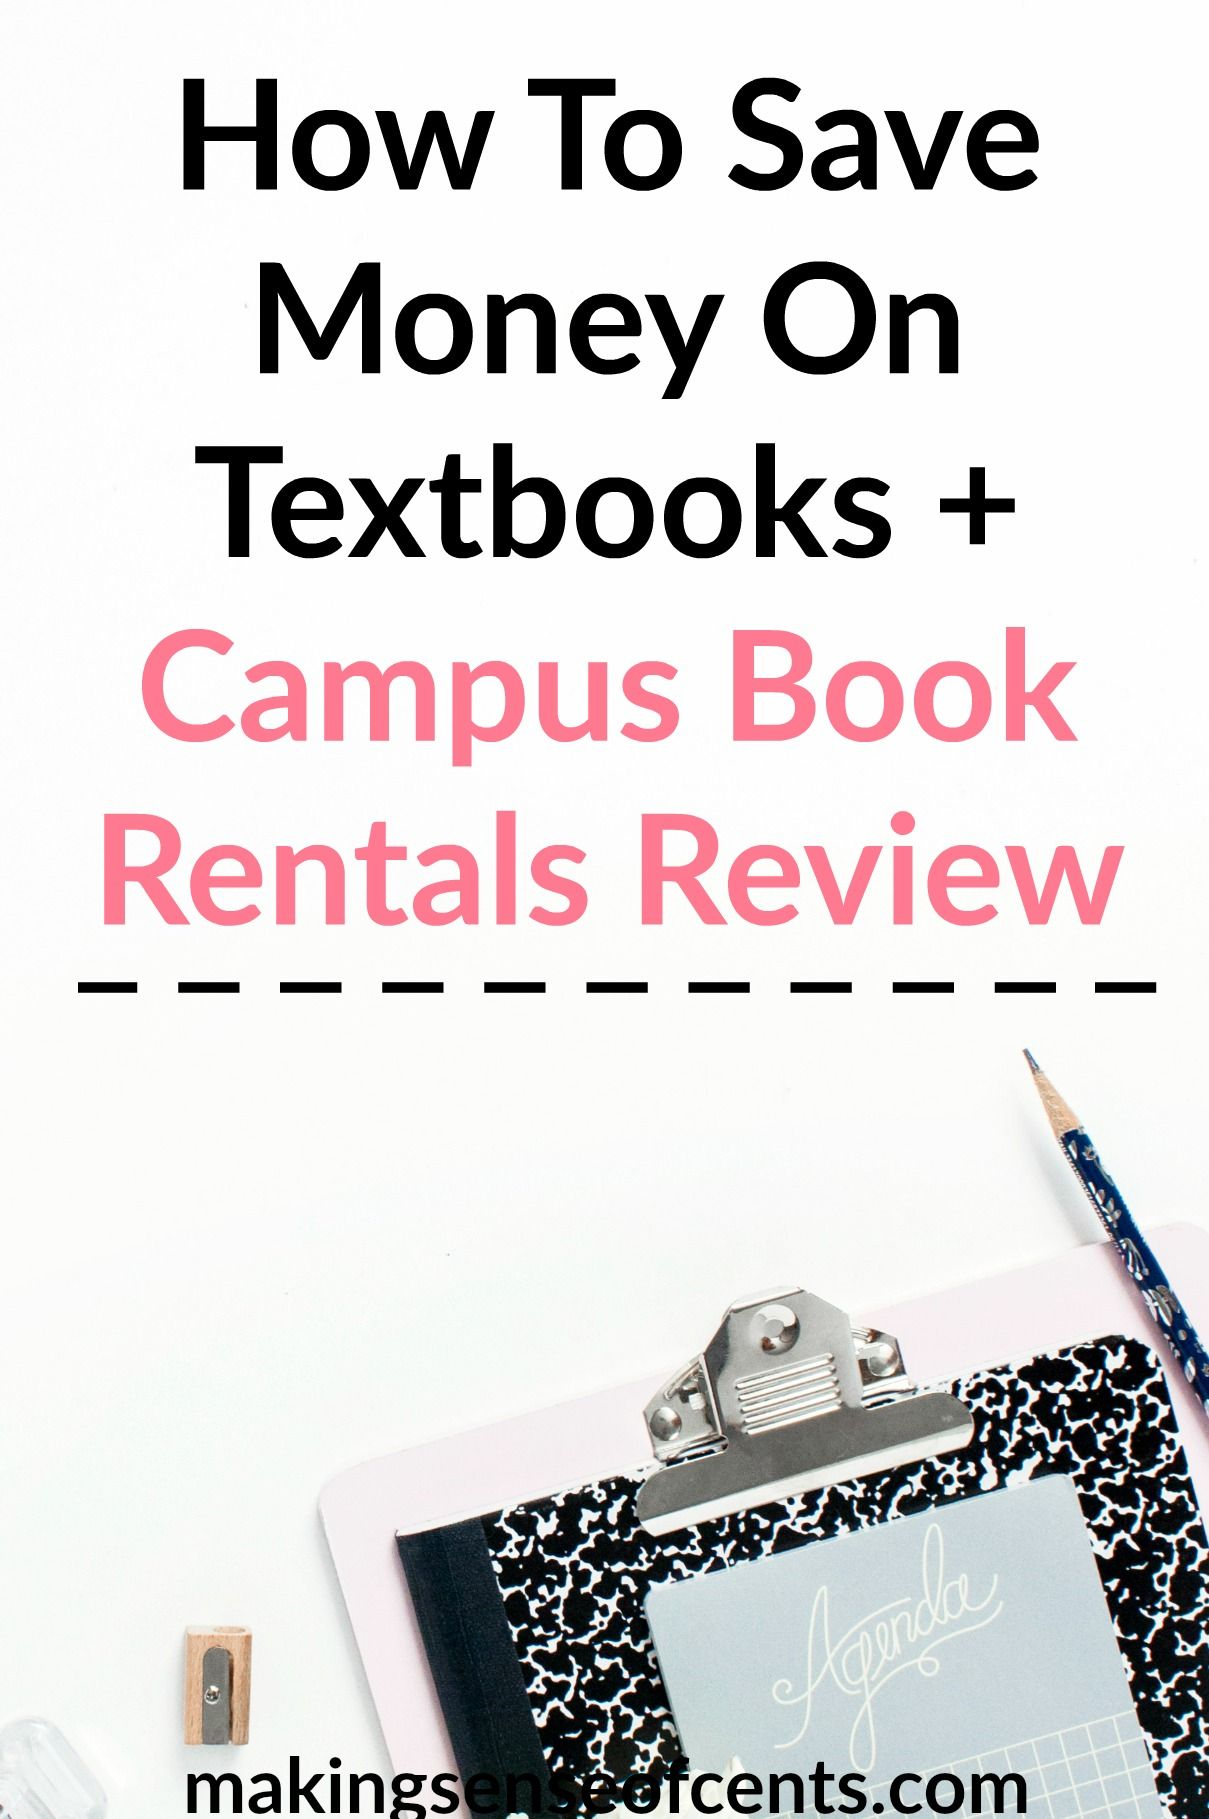 Cheap Book Rentals >> Campus Book Rentals Review How To Save Money On Textbooks Money